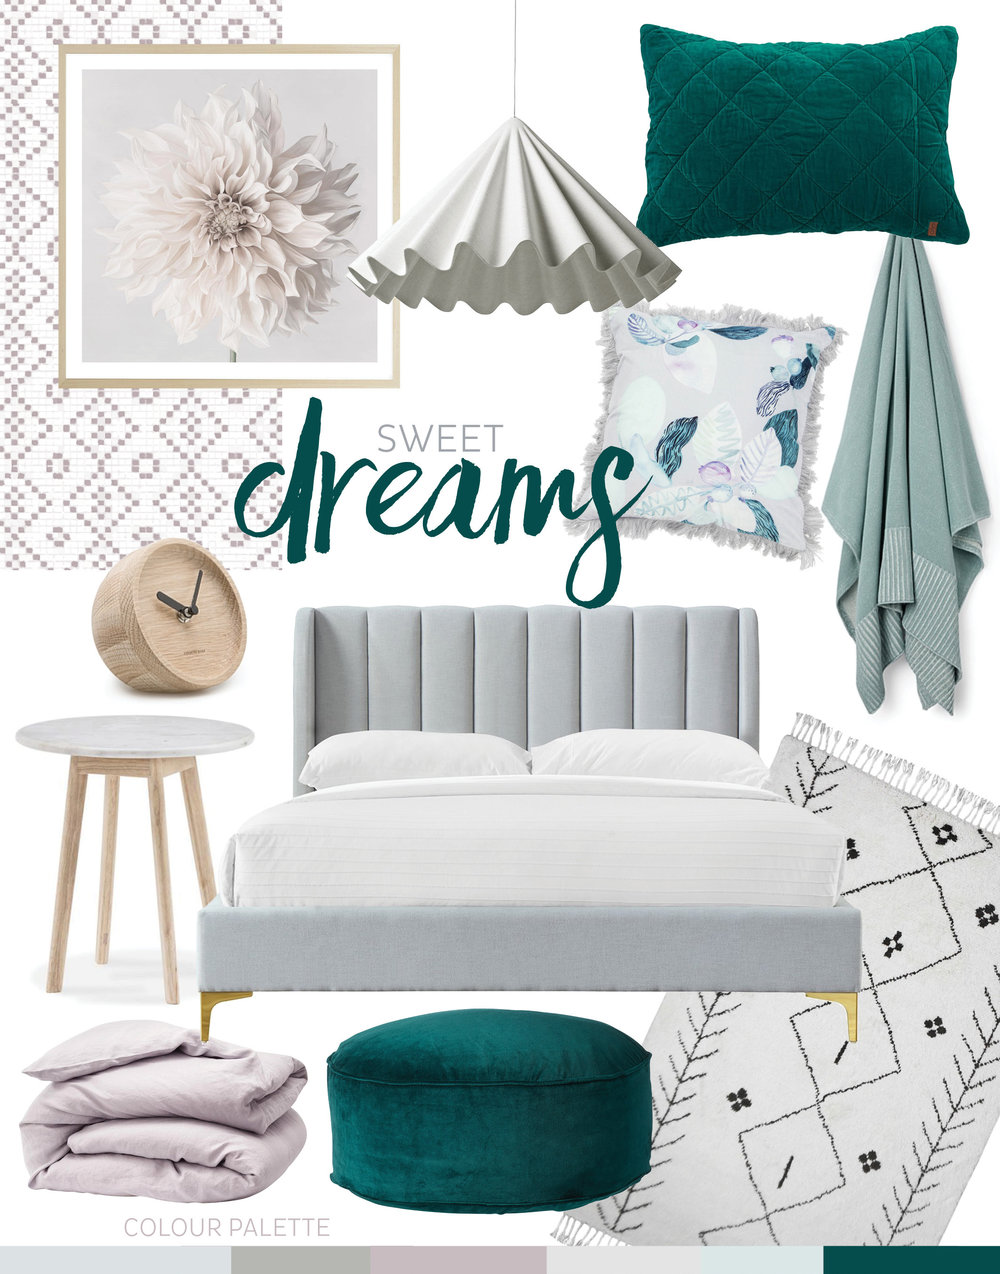 ADORE_BLOG_SWEET_DREAMS_lilac_lavender_jade_green_mint_delicate_bedroom_styling_interior_moodboard.jpg